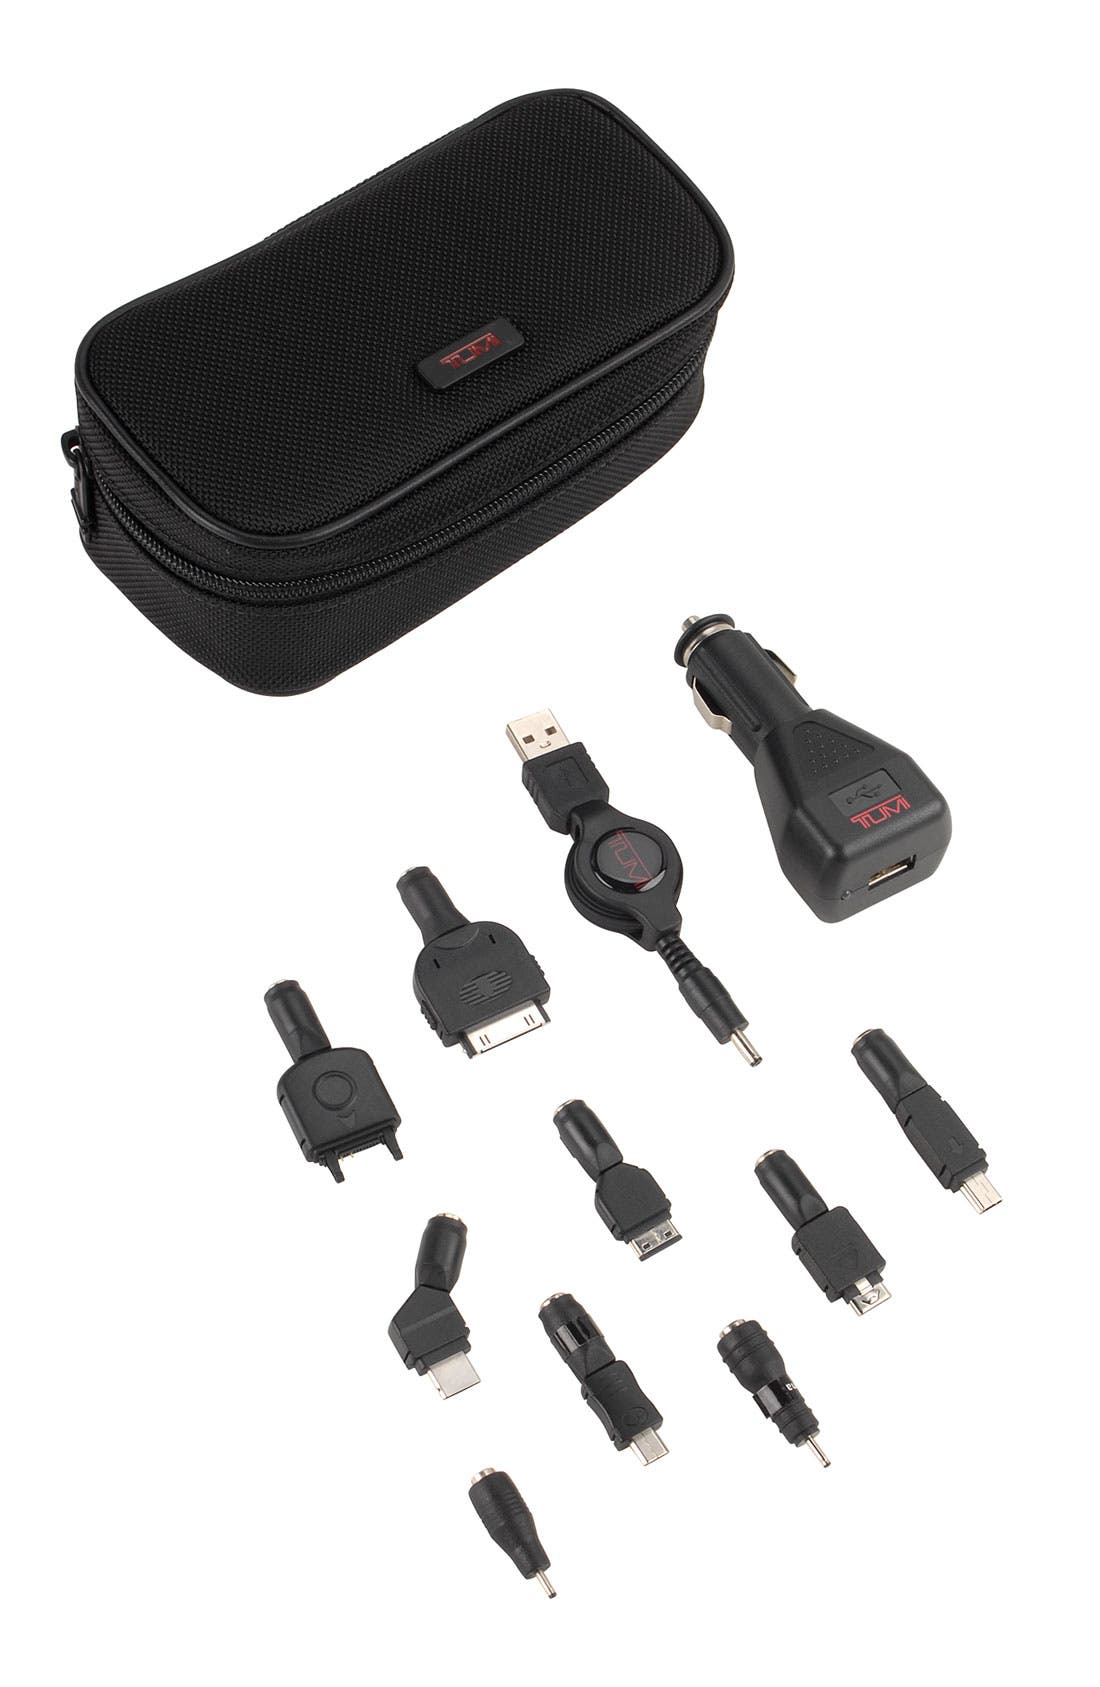 USB Cell Phone Charger Kit with Case,                             Alternate thumbnail 2, color,                             001